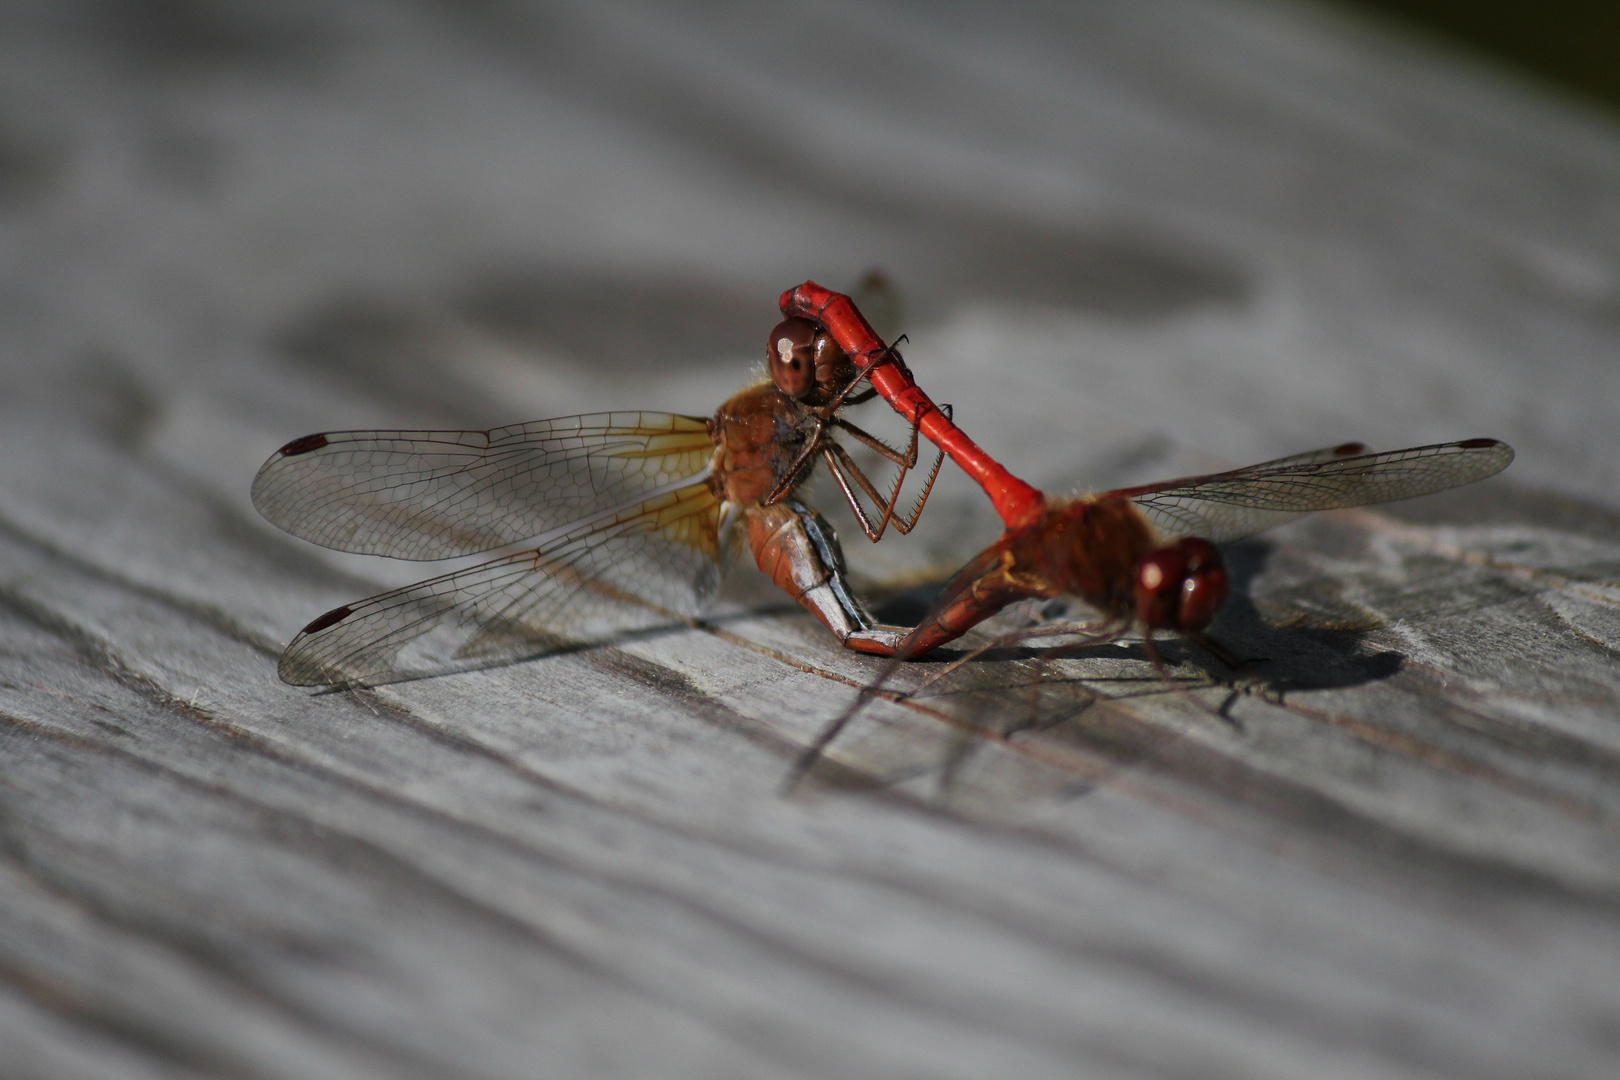 Dragonfly coupling